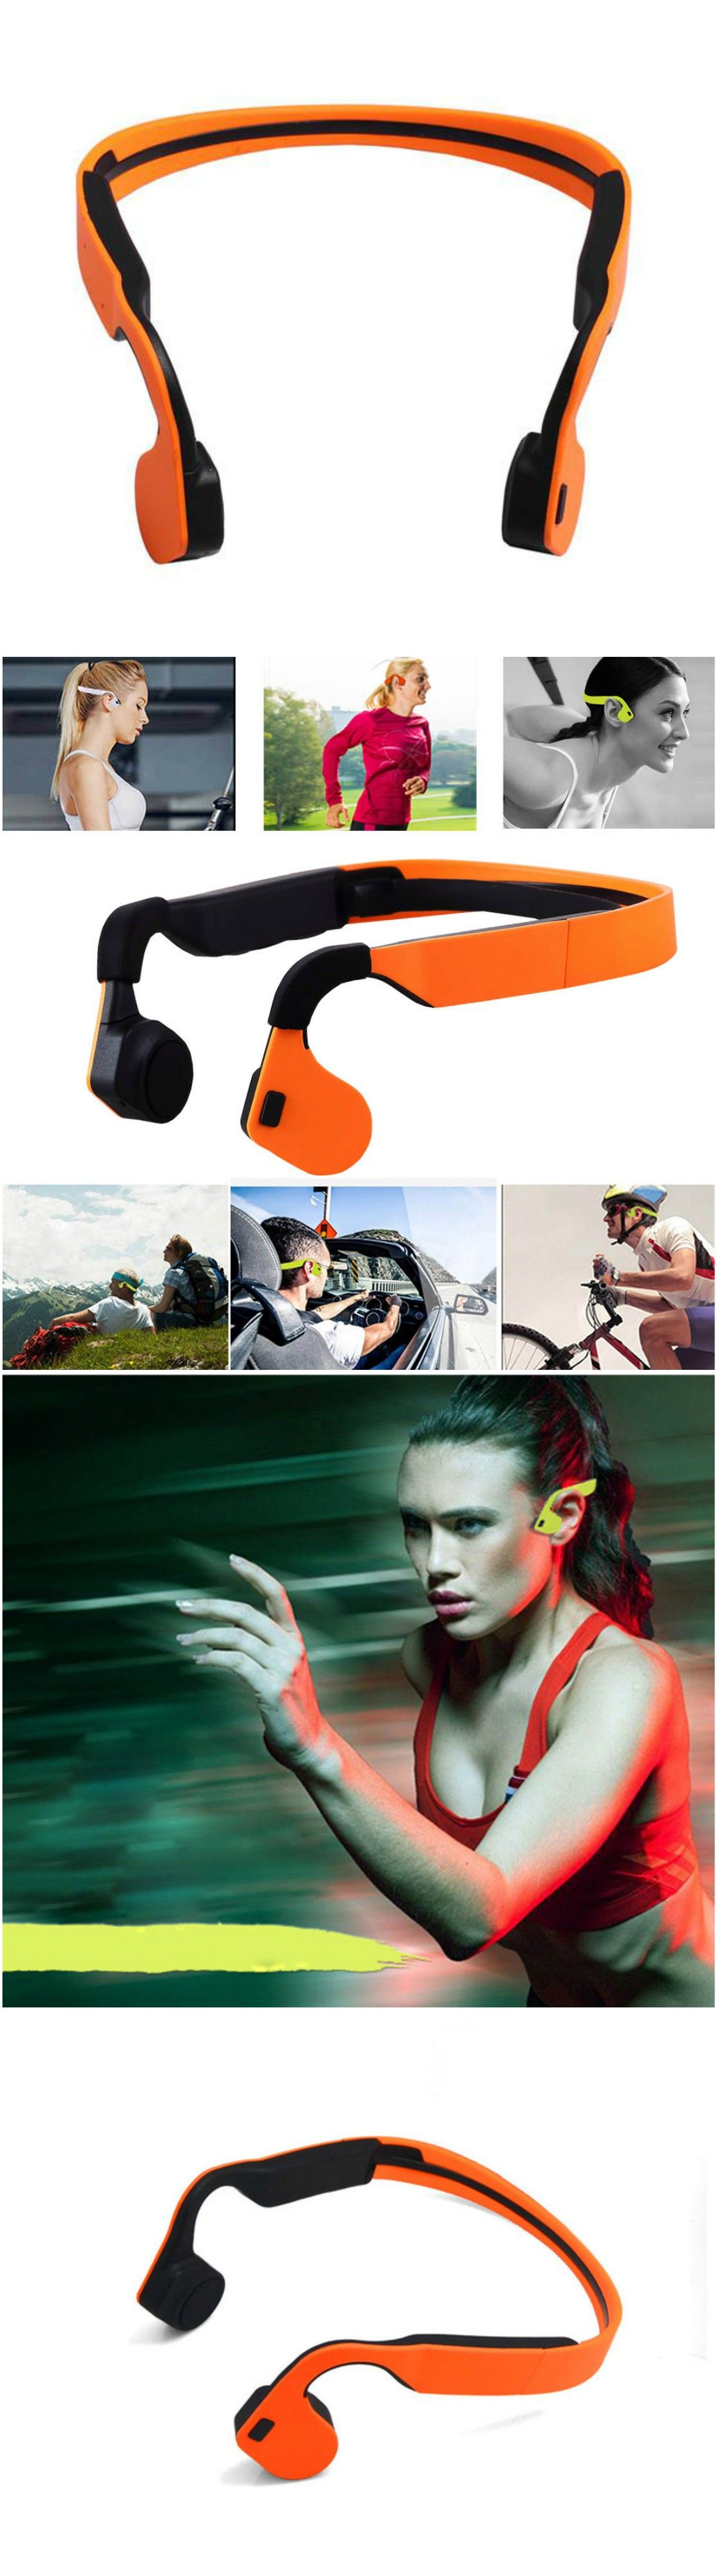 Bluetooth Headphone Sport Earpods Wireless Headset with Microphone. Fits into workout and gym clothes.…